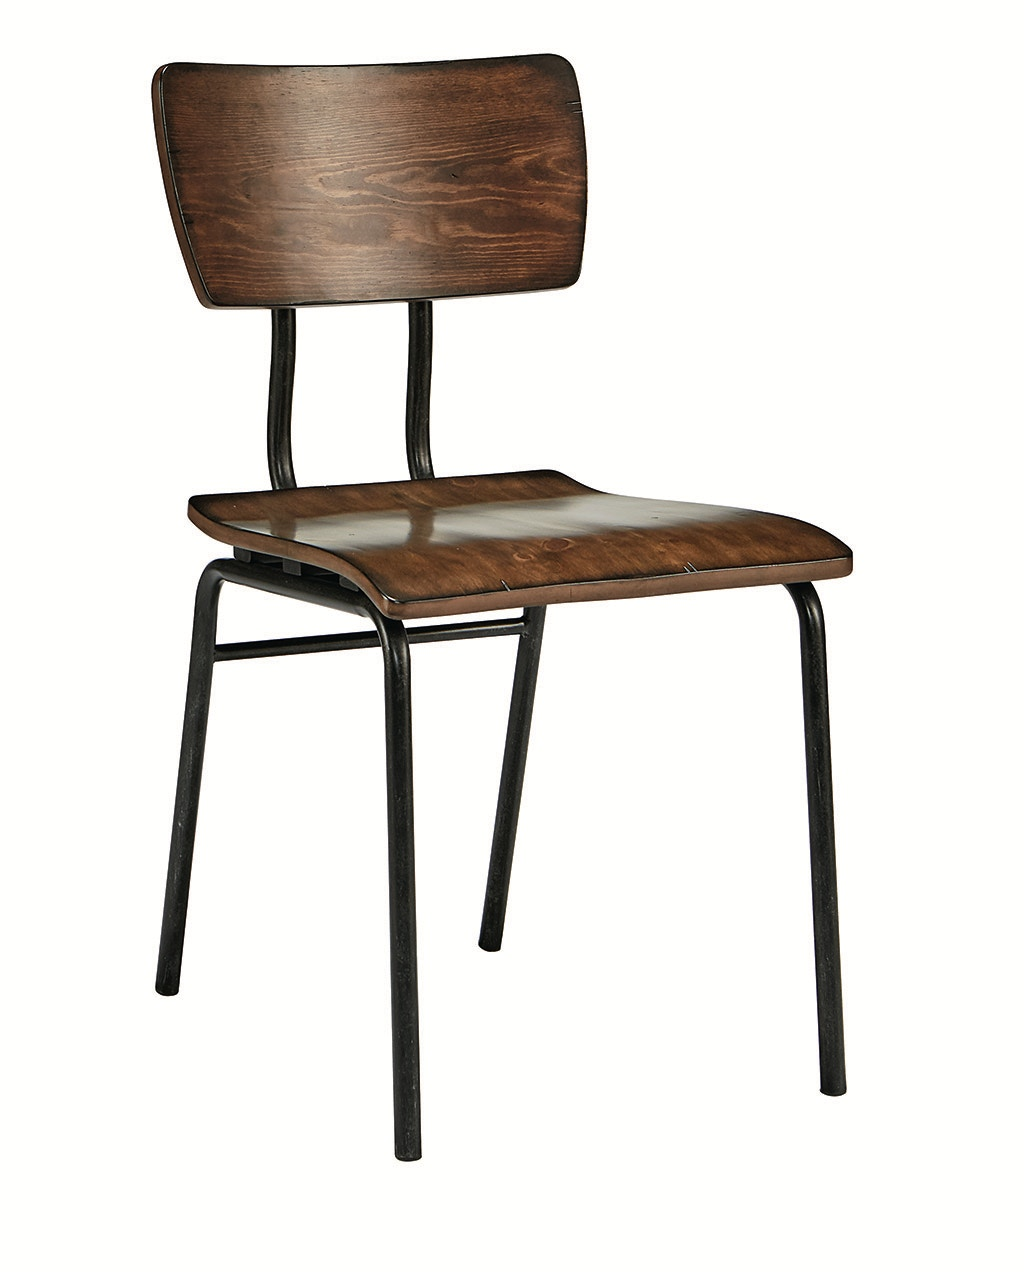 Attirant Magnolia Home This Draftsman Chair With Wood Seat. Milk Crate Finish.  1011004L